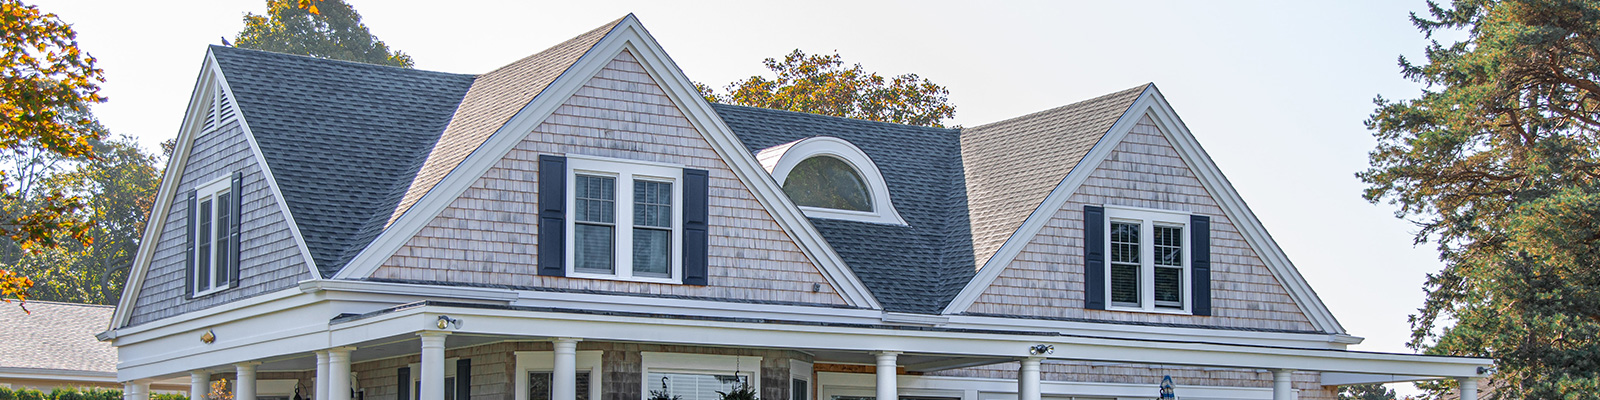 Residential Roof Replacement in Englewood